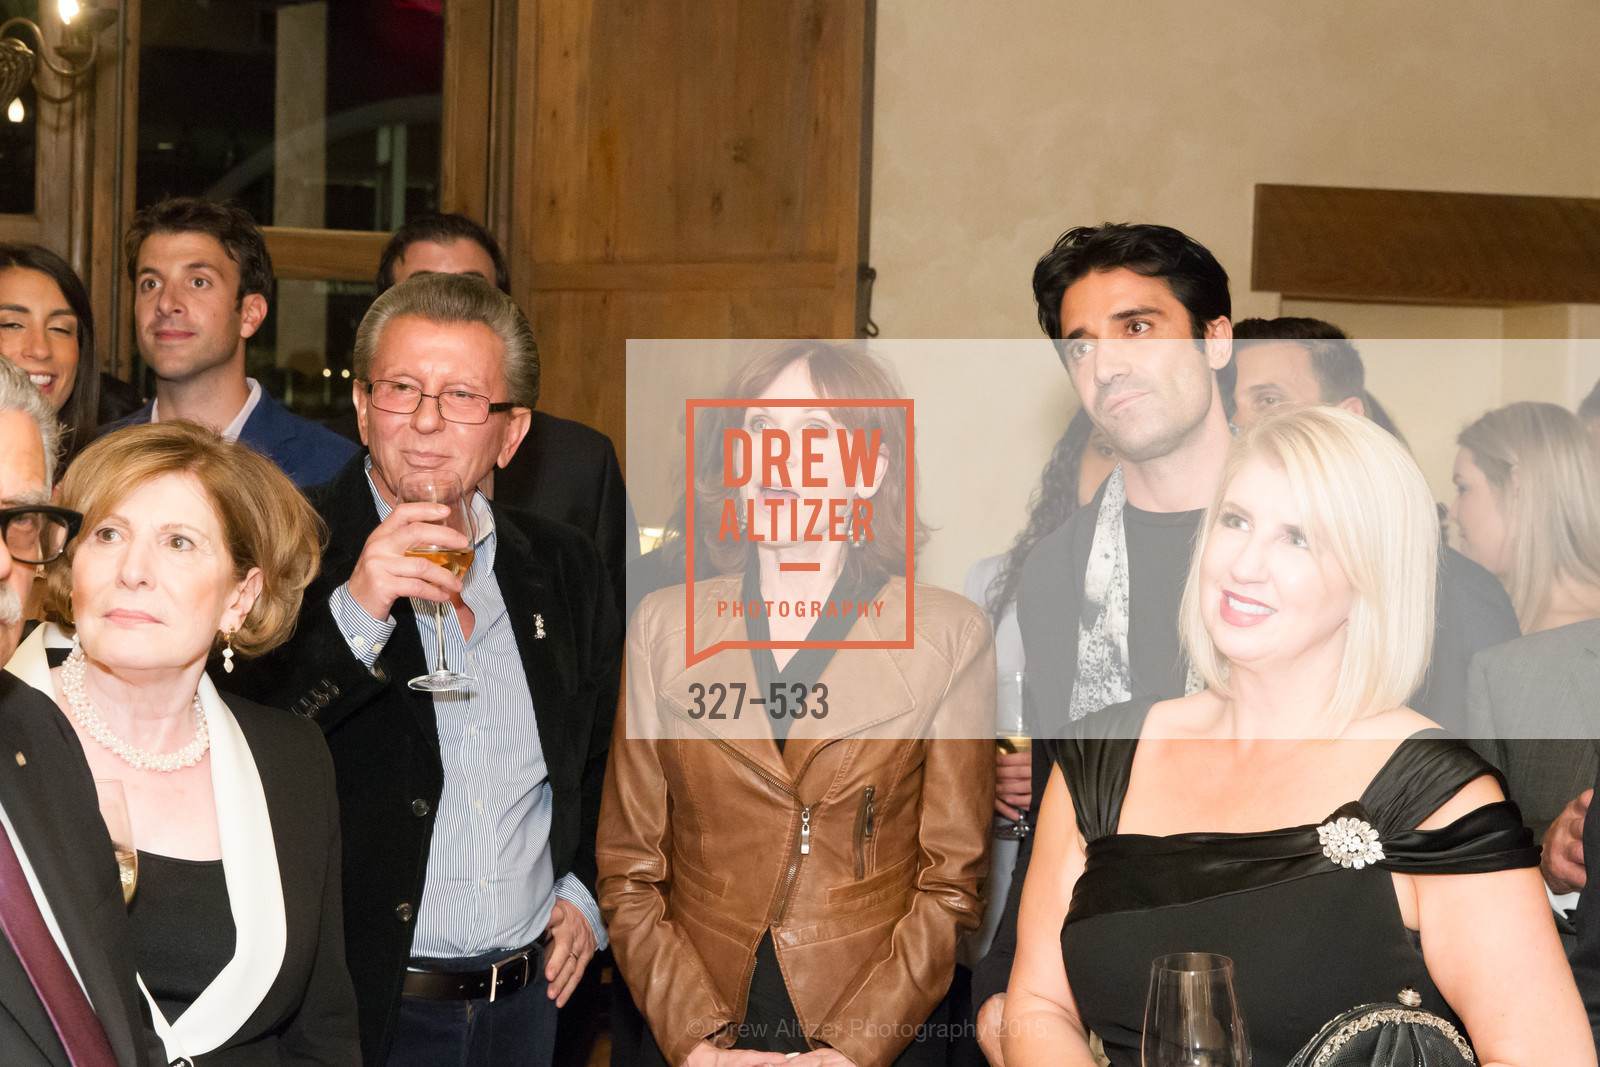 Tula Mouroufas, George Marcus, Marilu Henner, Gilles Marini, Roberta Economidis, Hellenic Charity Ball Cocktail Reception, Kokkari. 200 Jackson St, San Francisco, CA 94111, November 13th, 2015,Drew Altizer, Drew Altizer Photography, full-service agency, private events, San Francisco photographer, photographer california